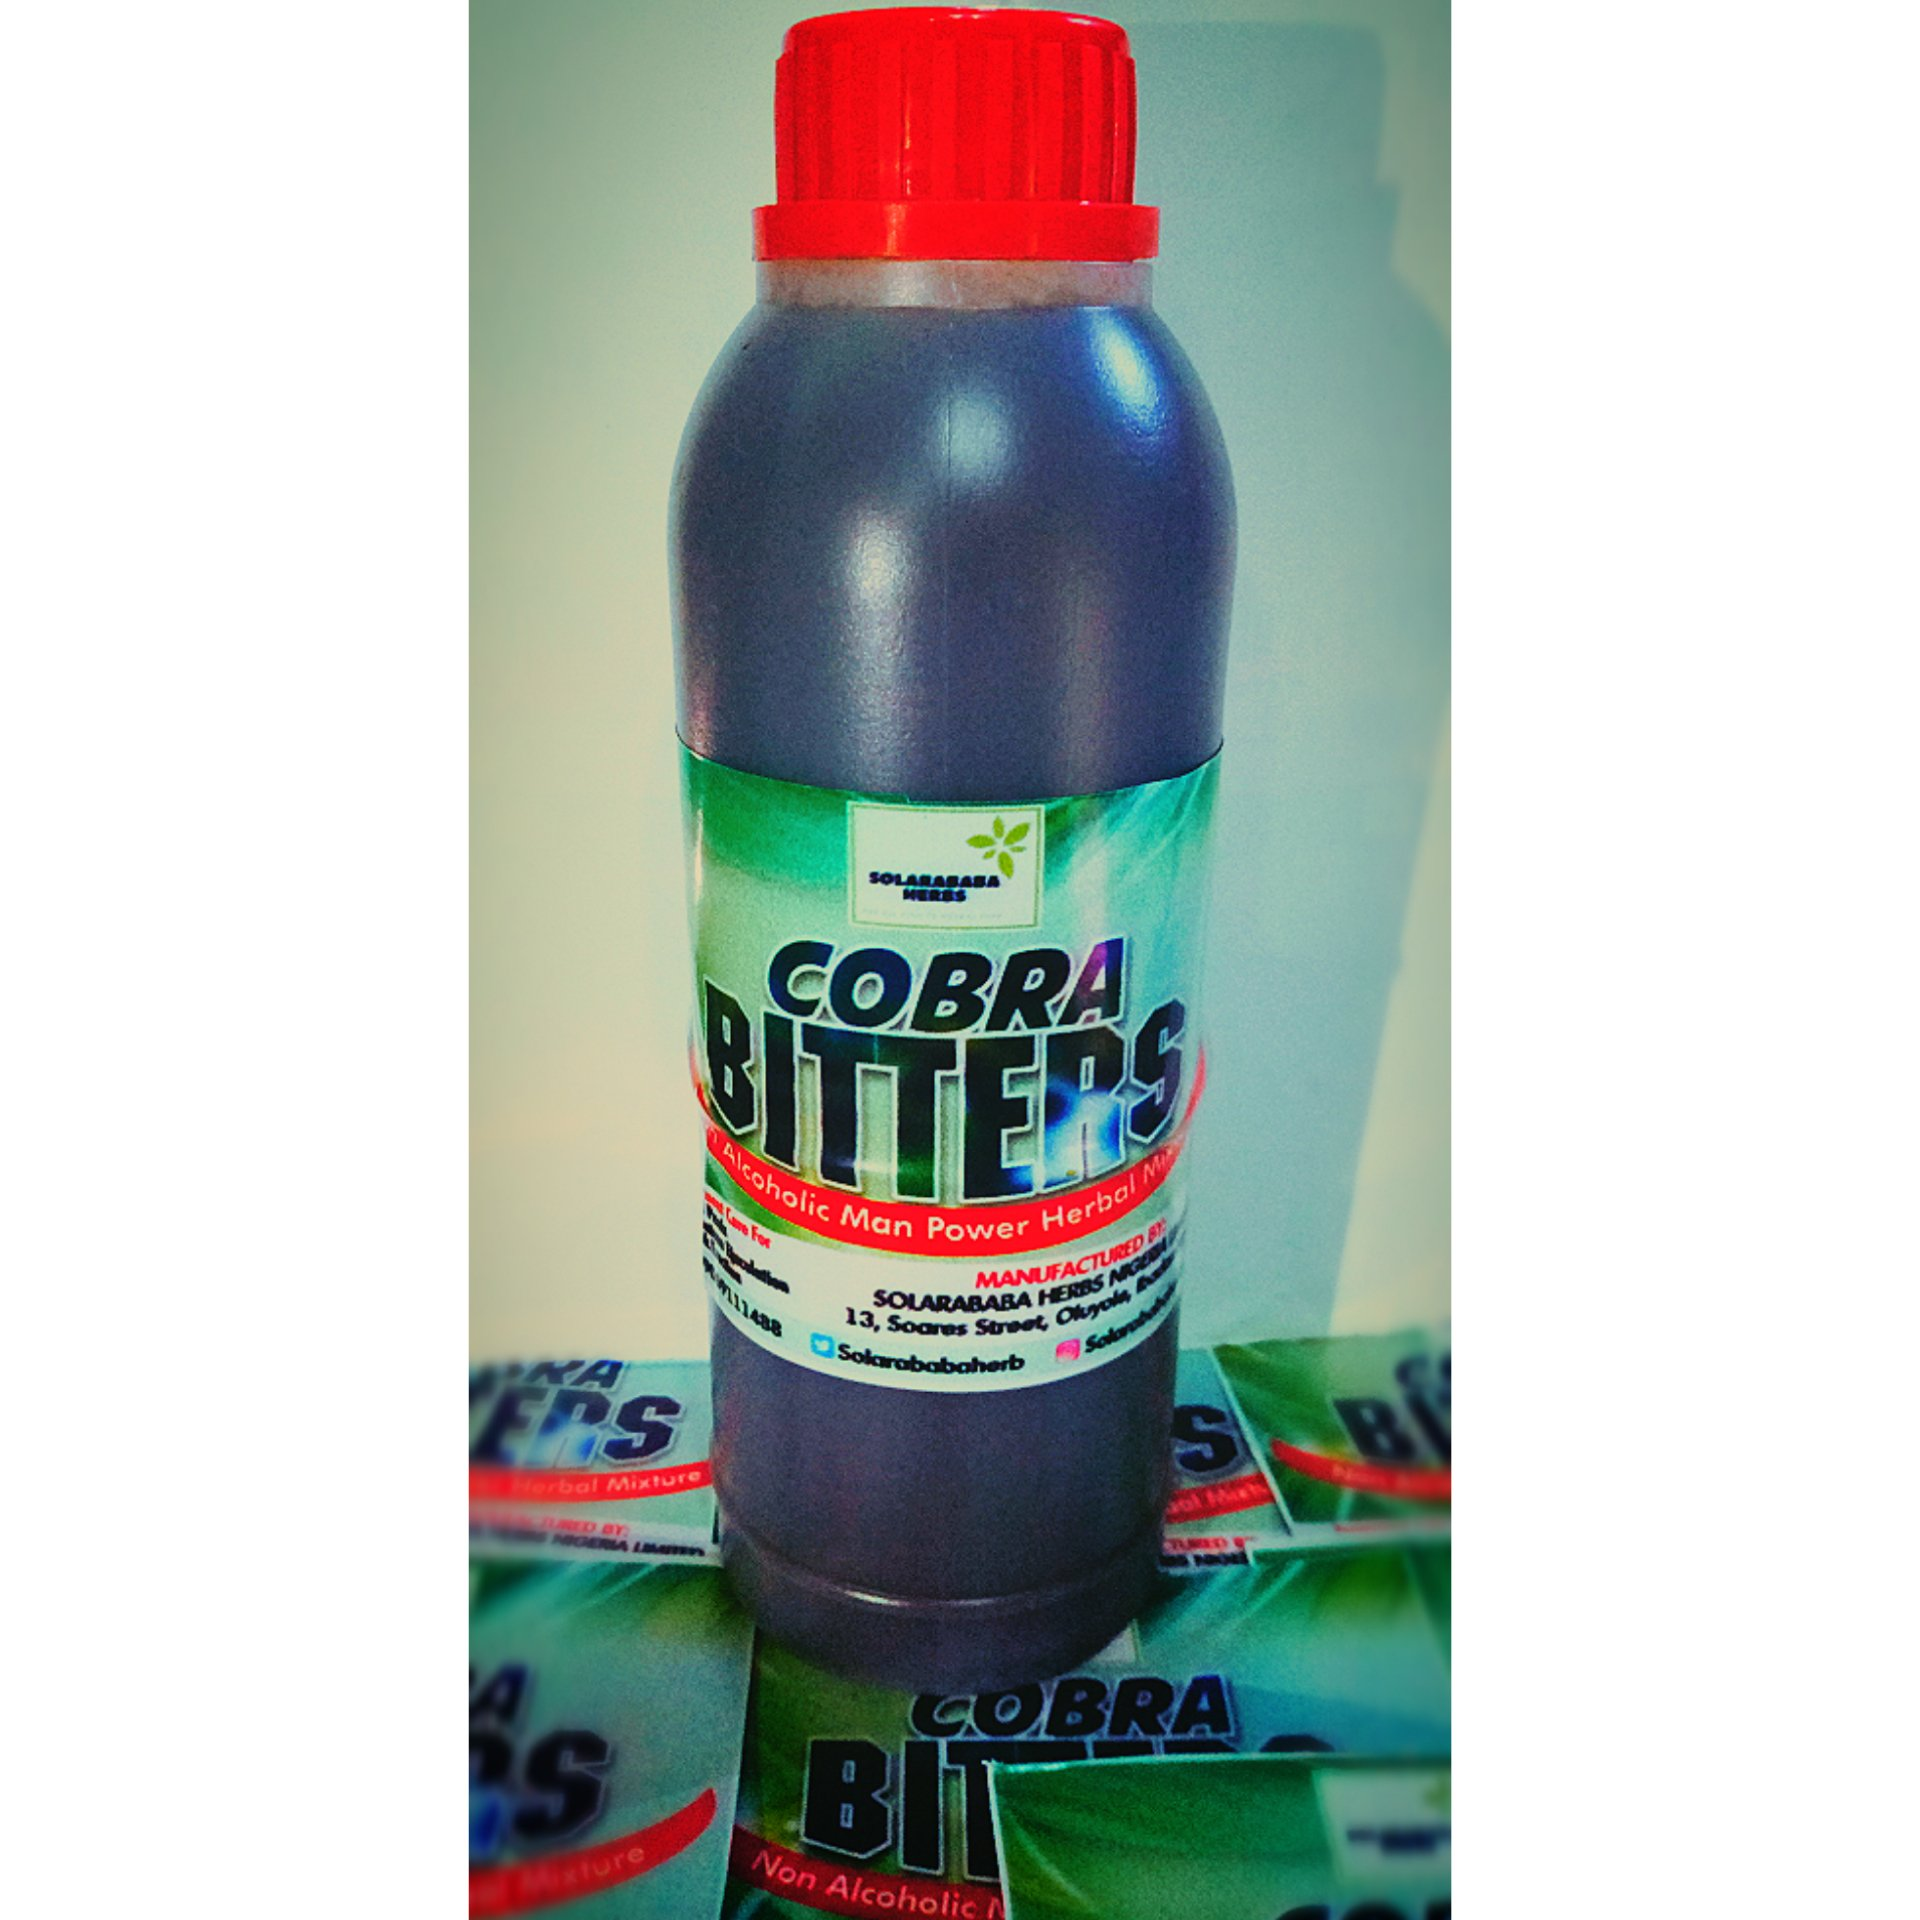 Cobra bitters Herbal Mixture, cure for premature ejaculation and weak erection